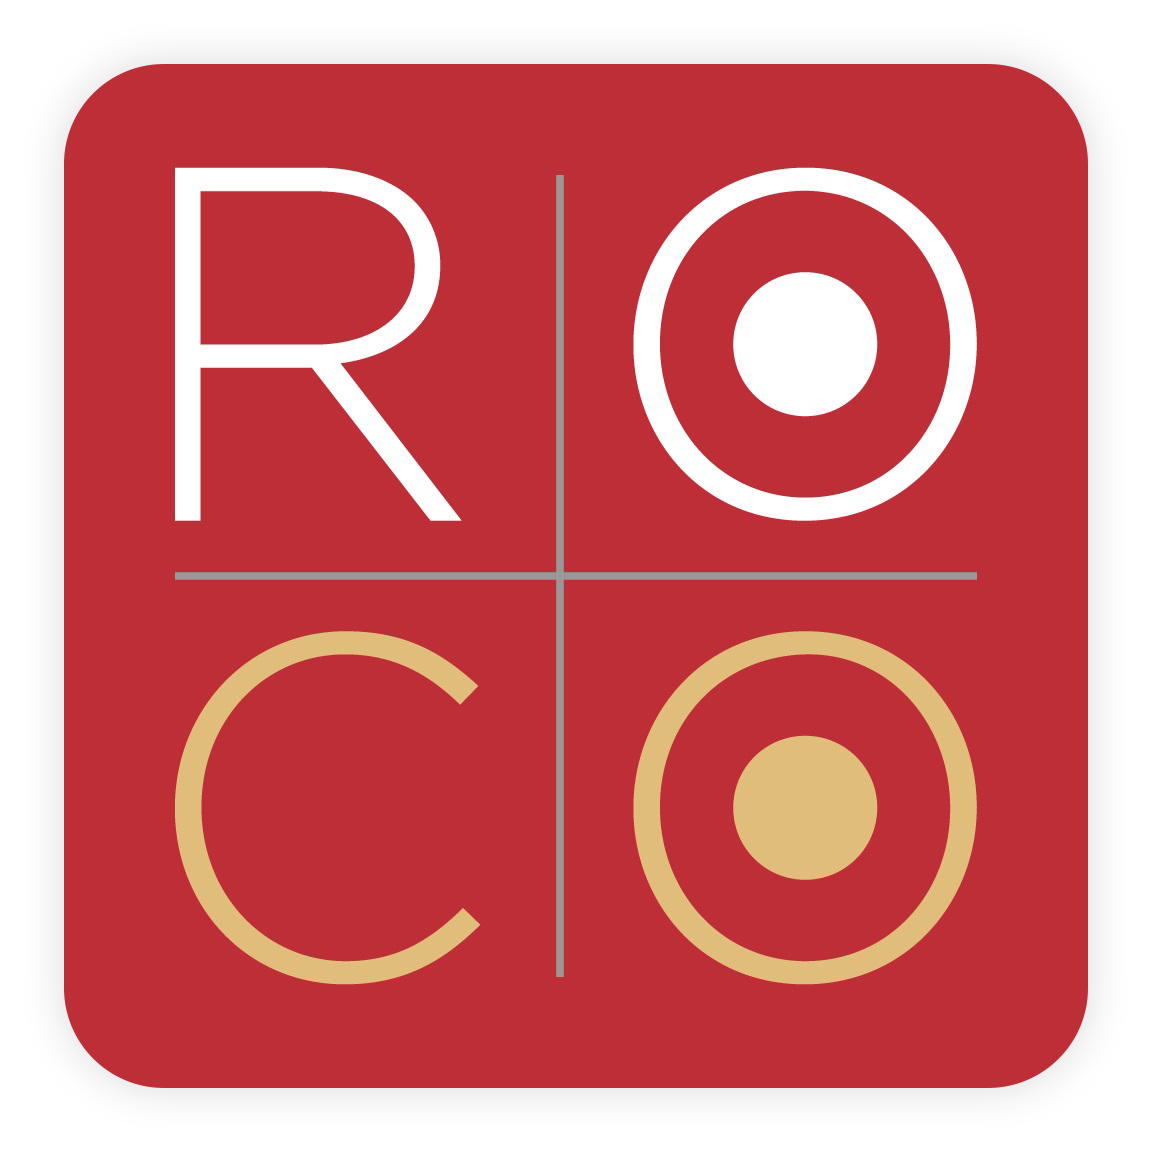 icon_roco.png